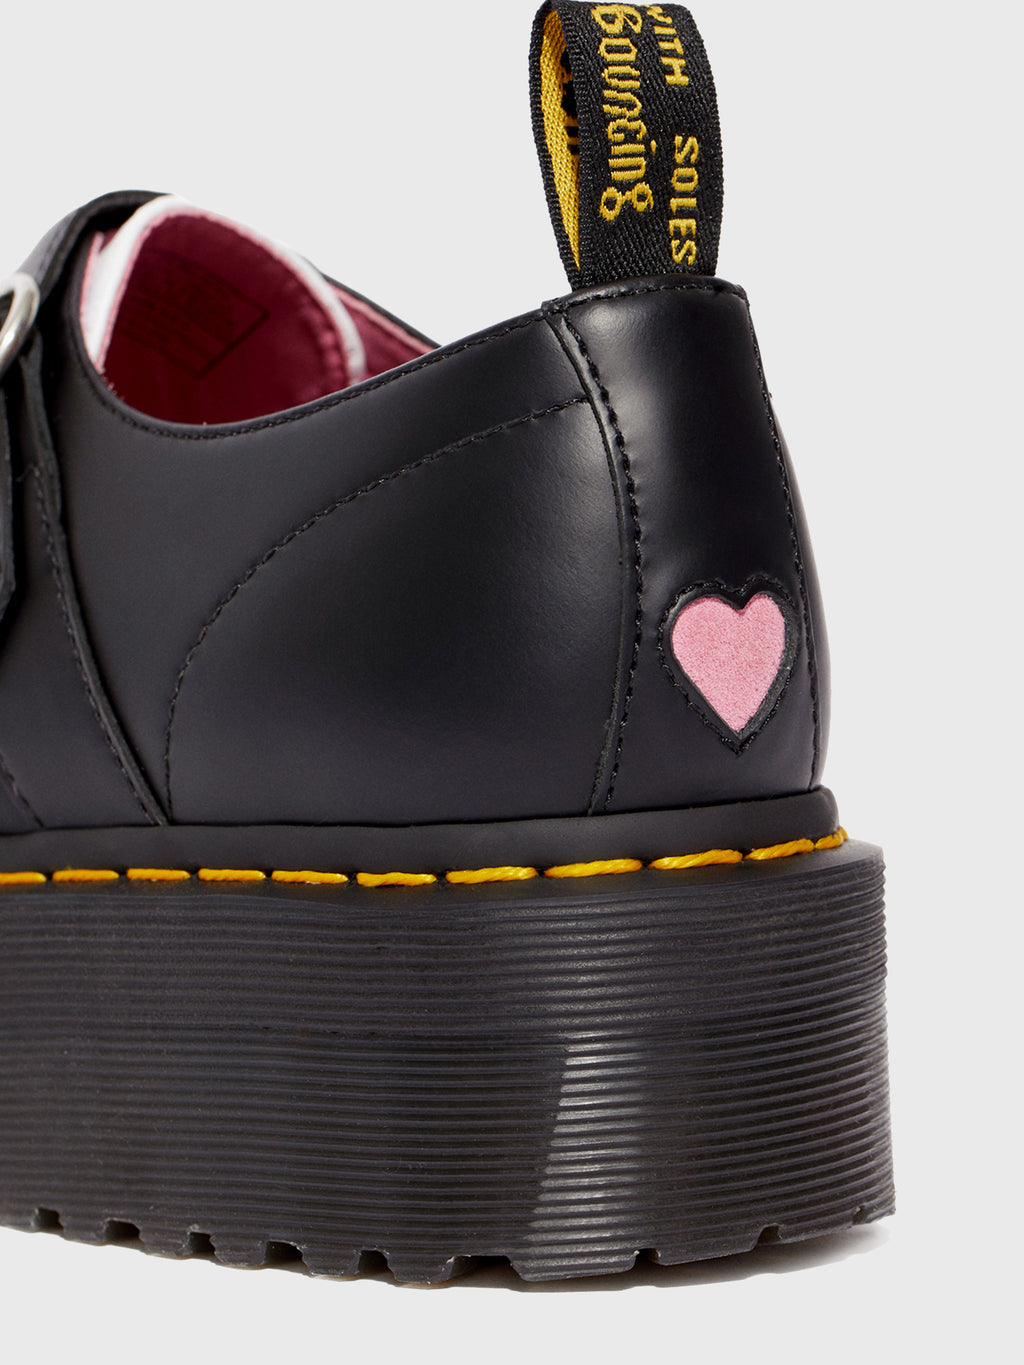 Dr. Martens X Lazy Oaf Pink Heart Buckle BOOTS (uk Size 6